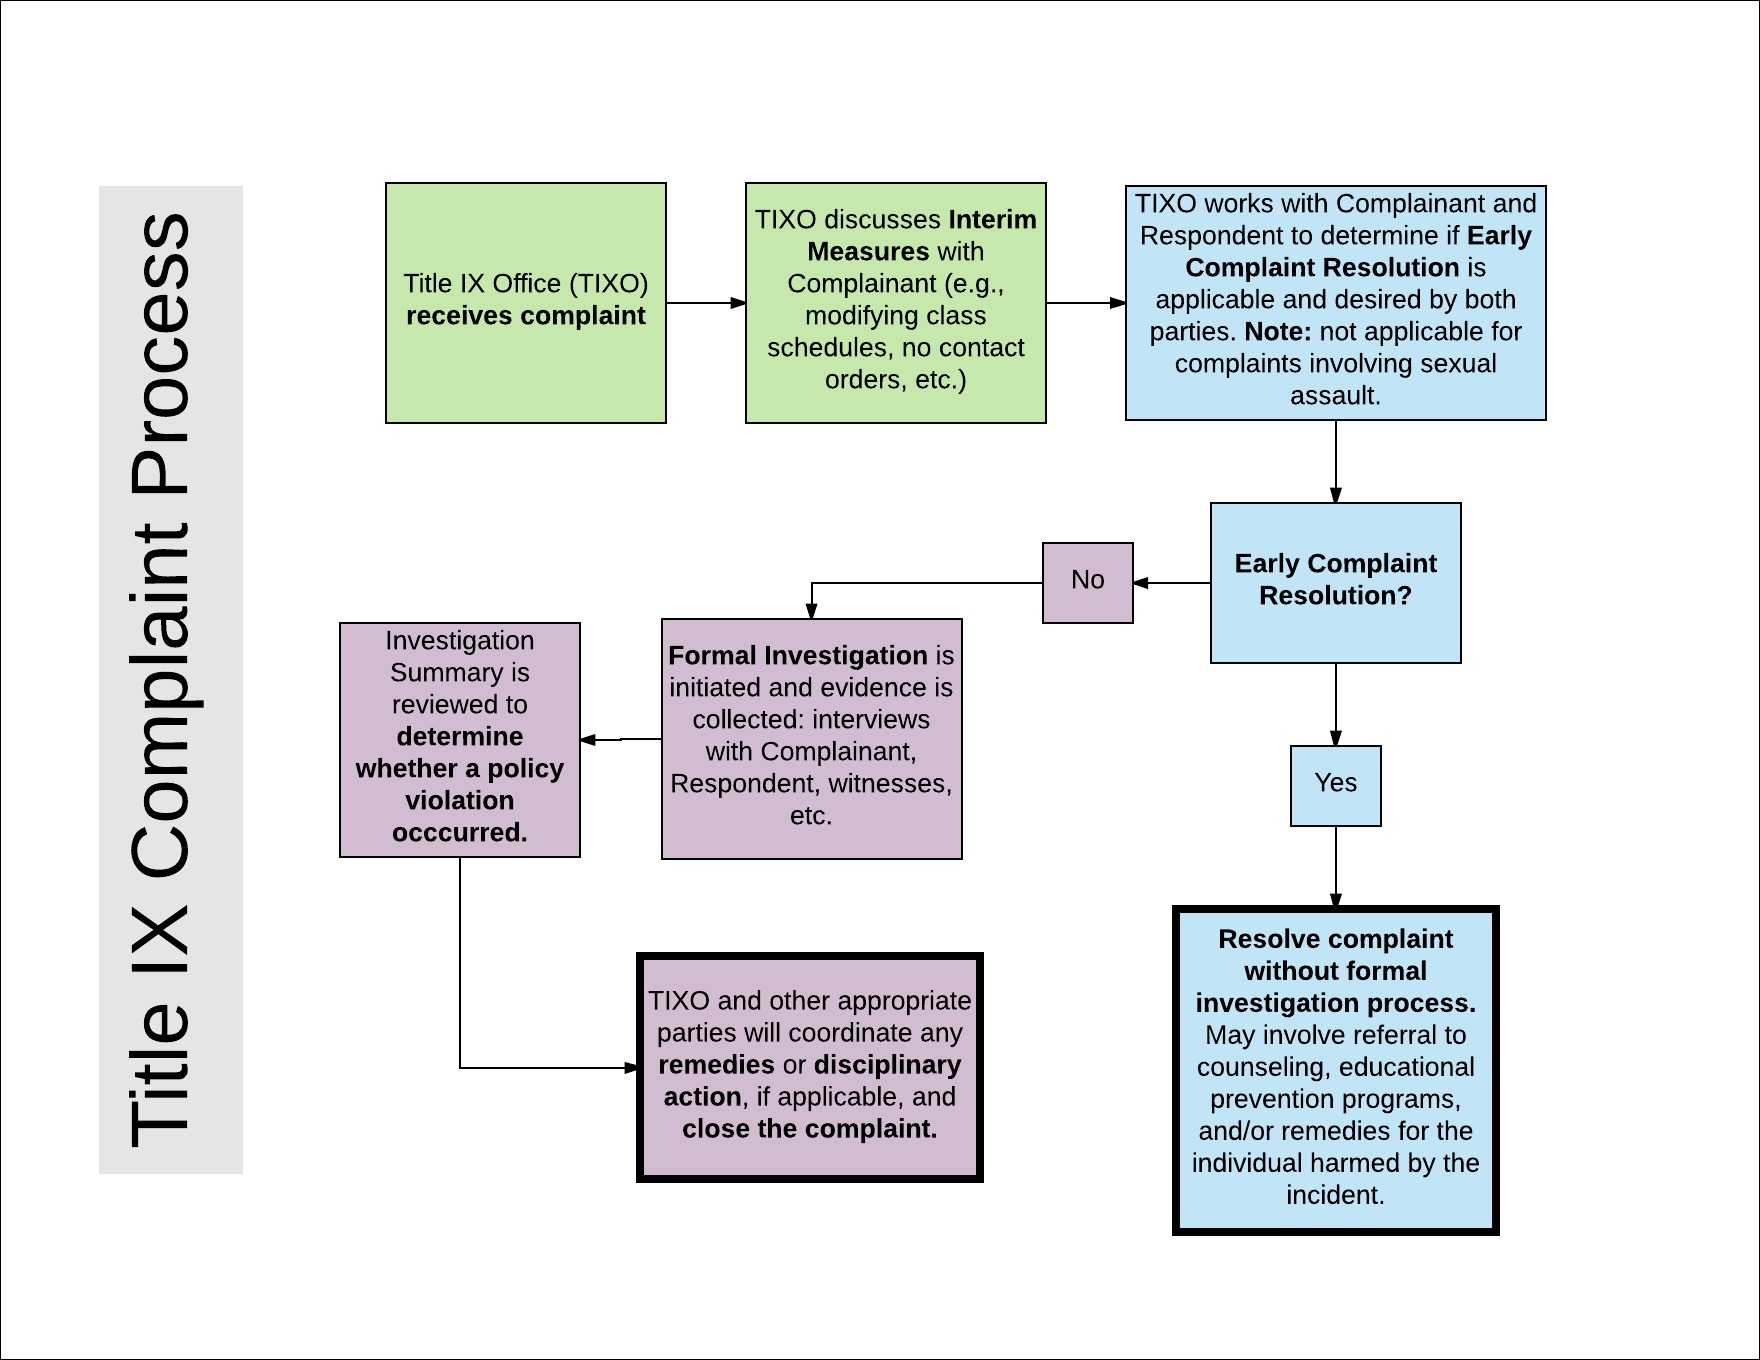 Graphic showing steps in complaint process.